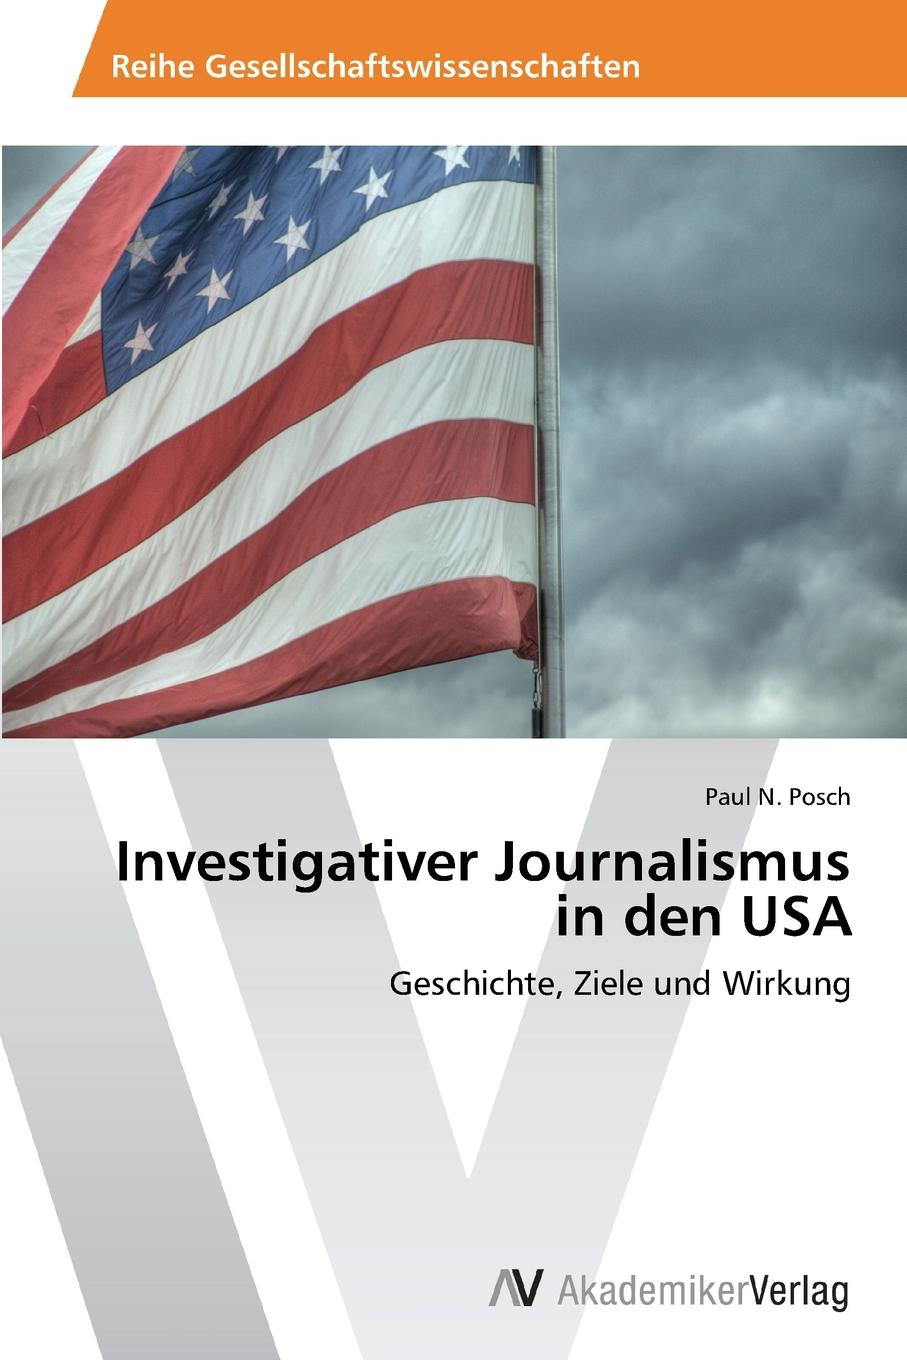 Posch Paul N. Investigativer Journalismus in den USA josef knoke die eugenische bewegung in den usa